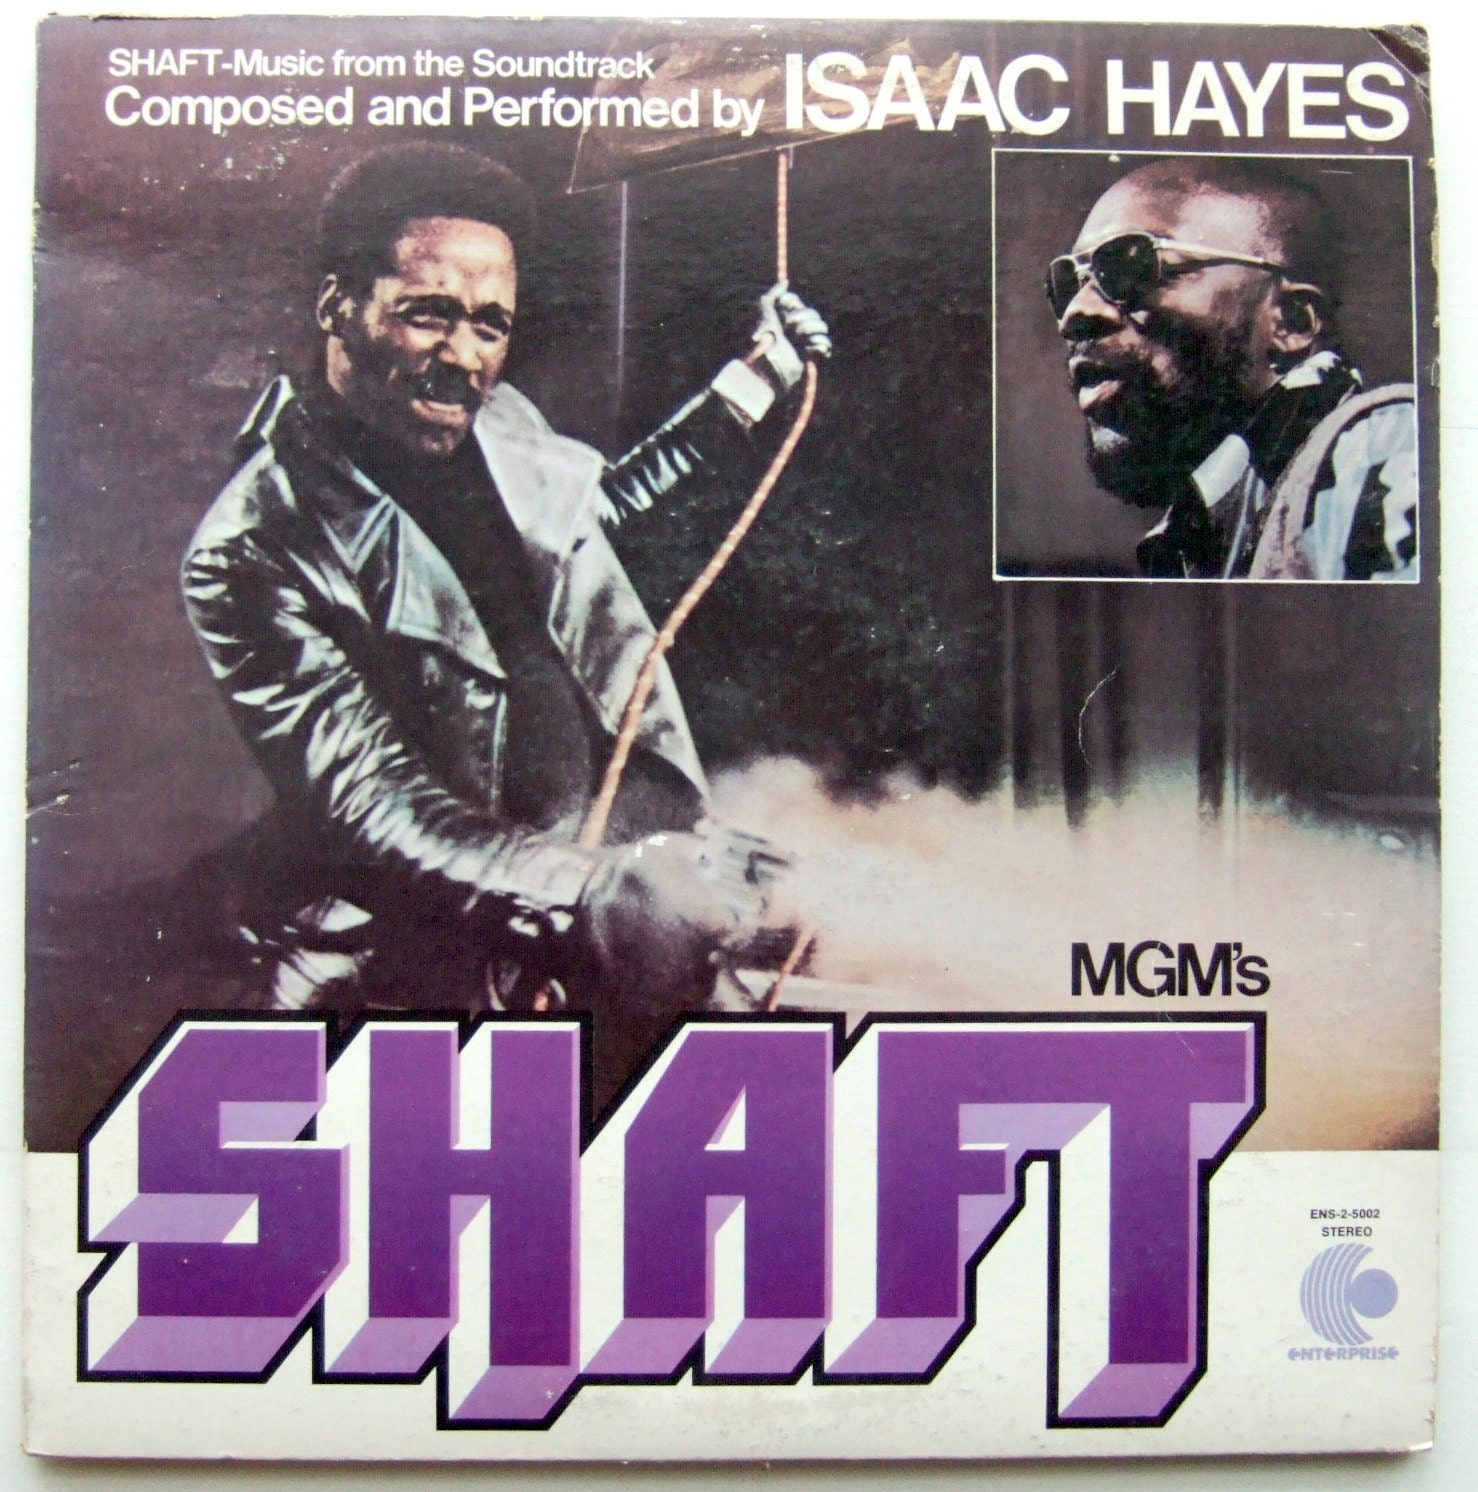 Shaft Movie Soundtrack Composed And Performed By Isaac Hayes